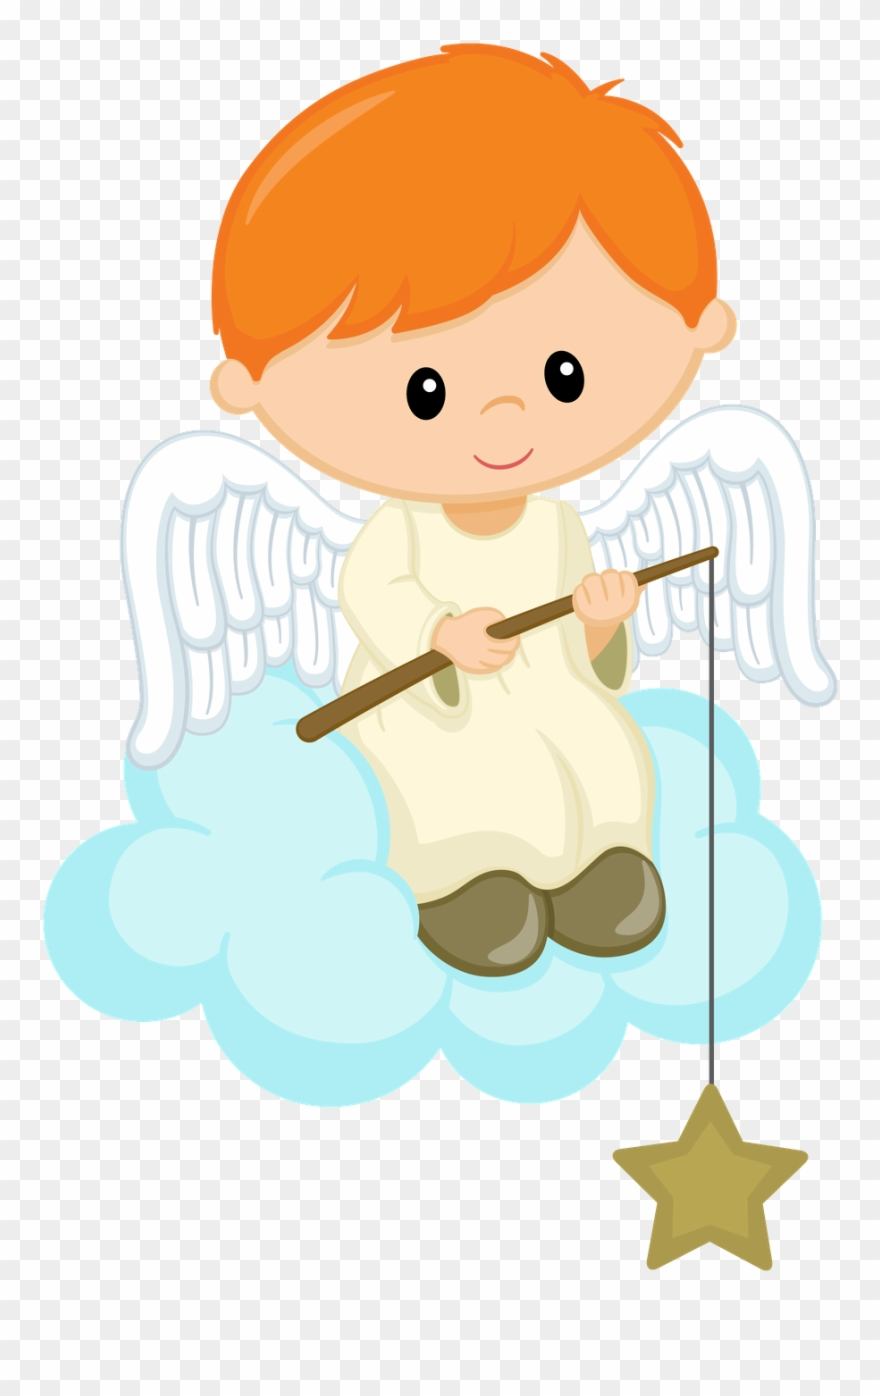 Angel clipart freeuse library Picture Stock Angel Baby Clipart - Angel Clipart - Png Download ... freeuse library